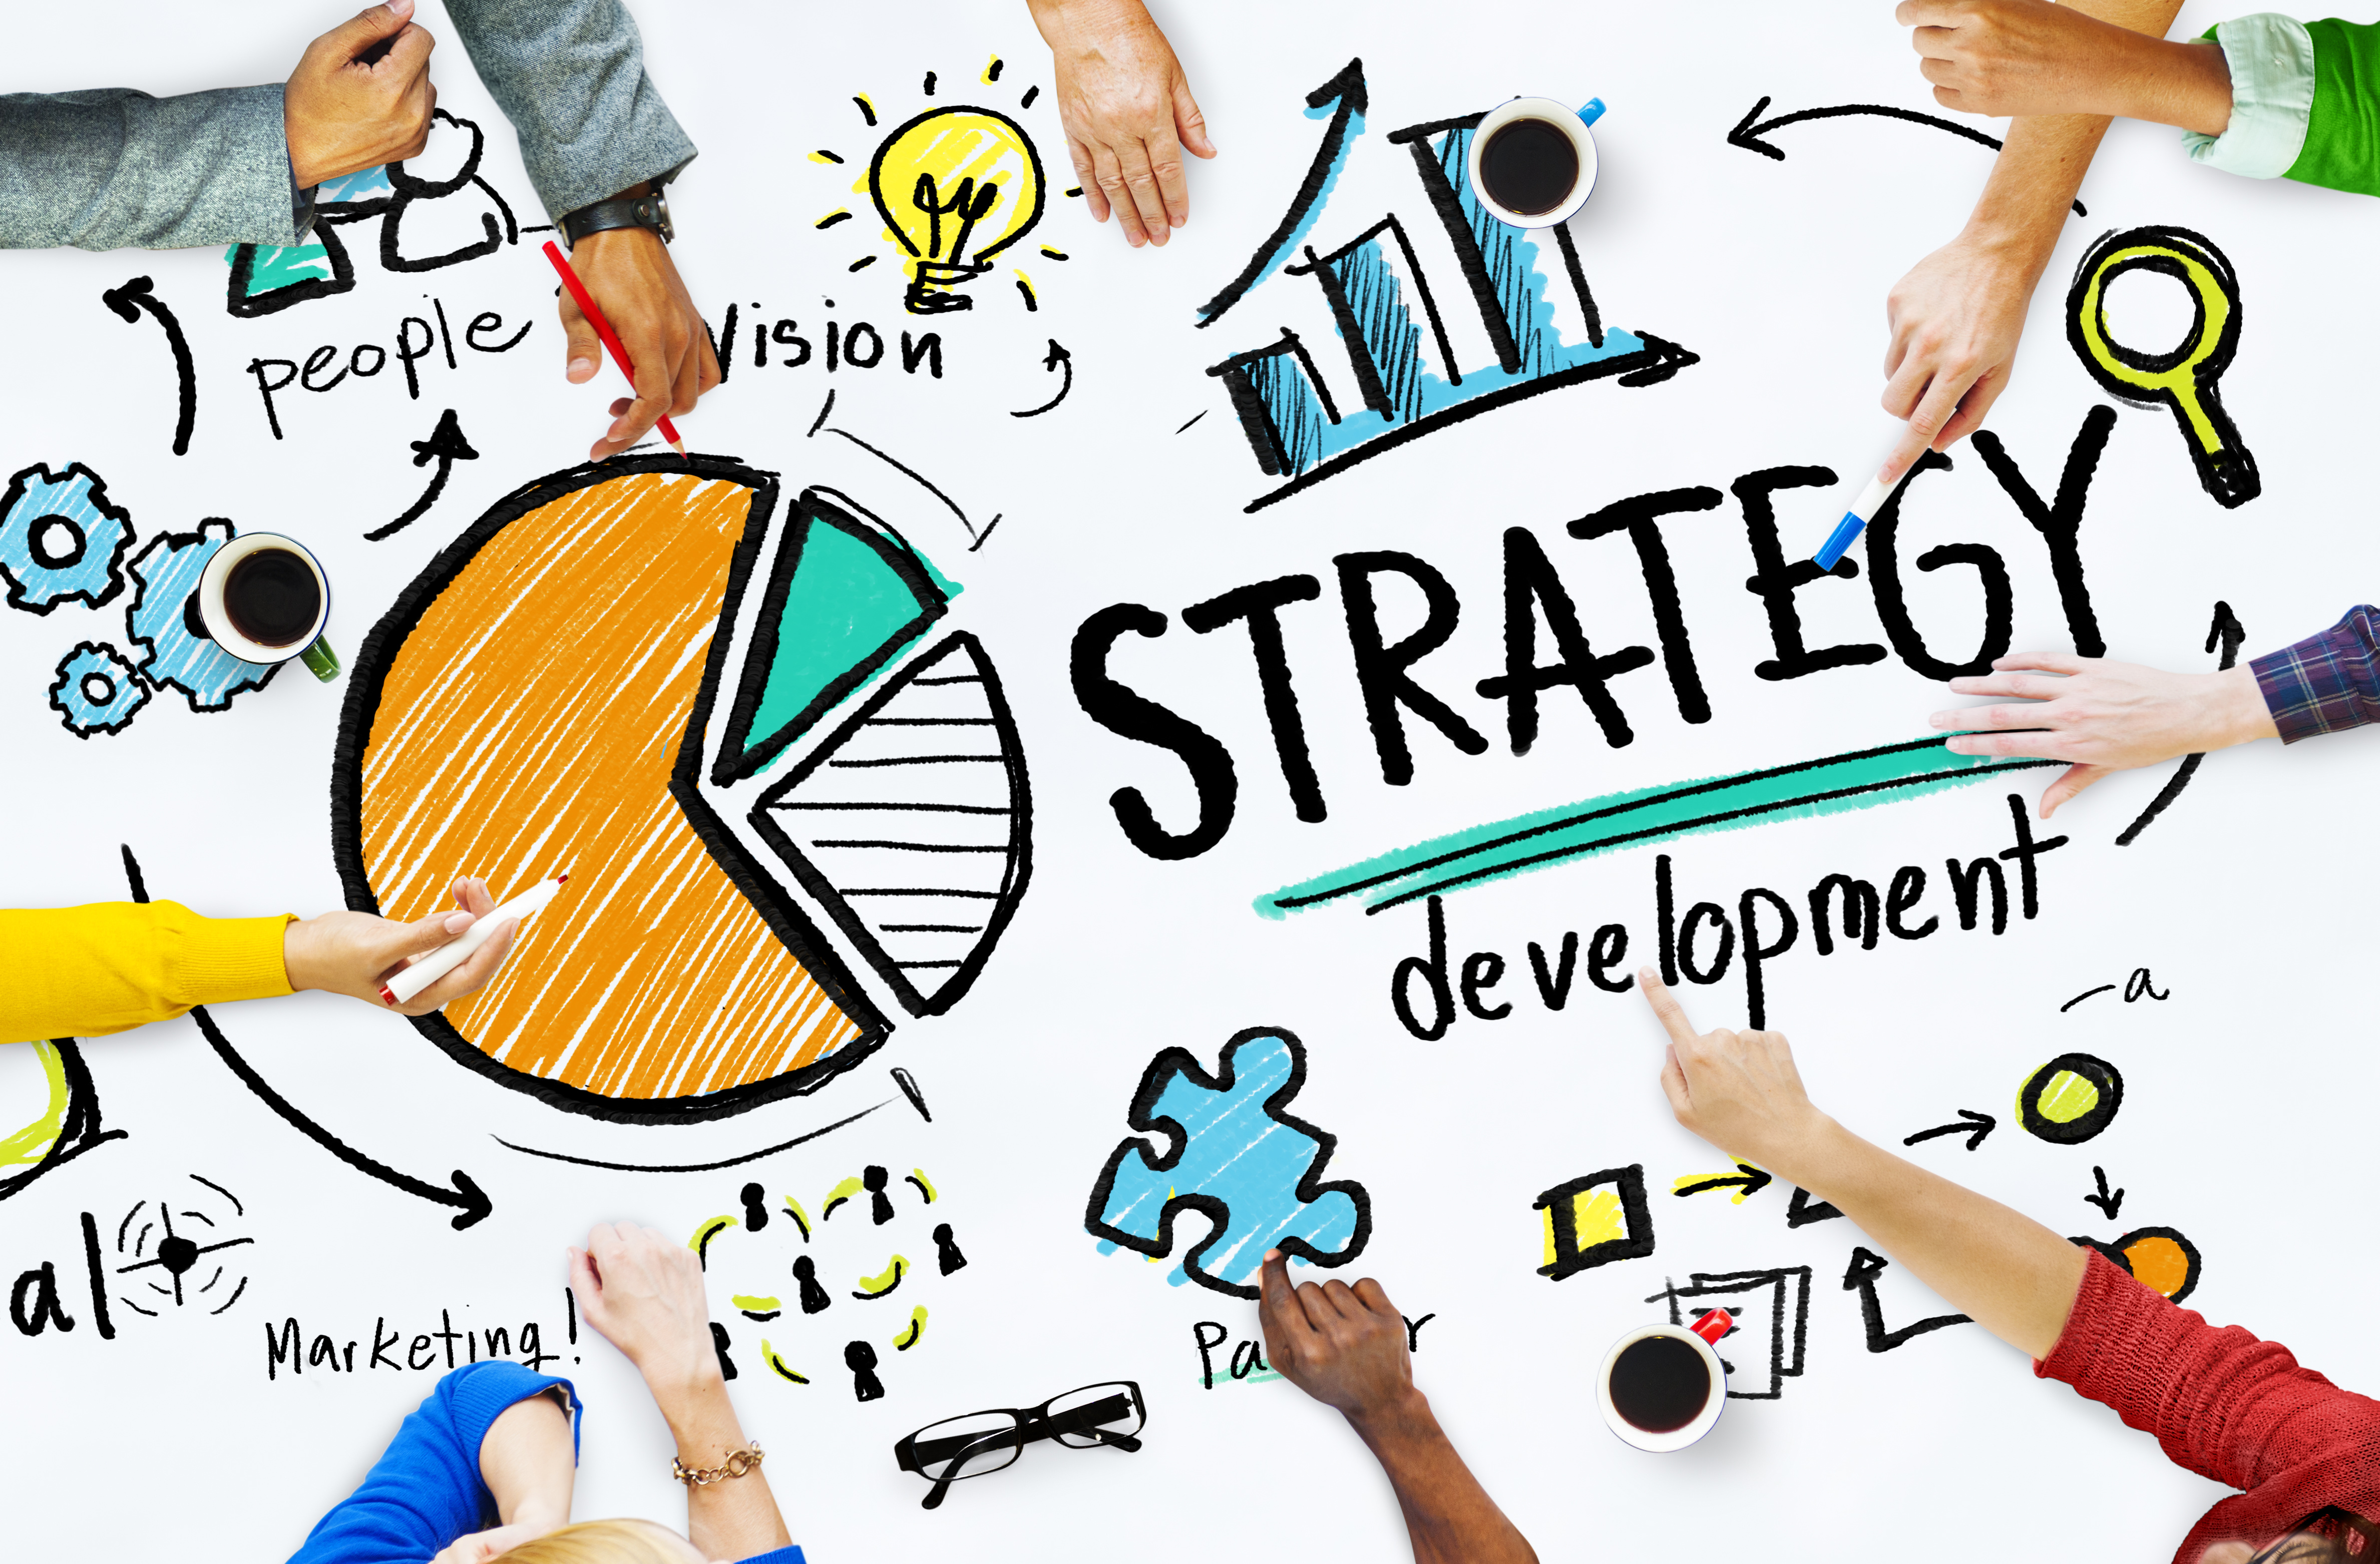 business marketing strategies Set the direction for your marketing strategy so you're satisfying your customers.